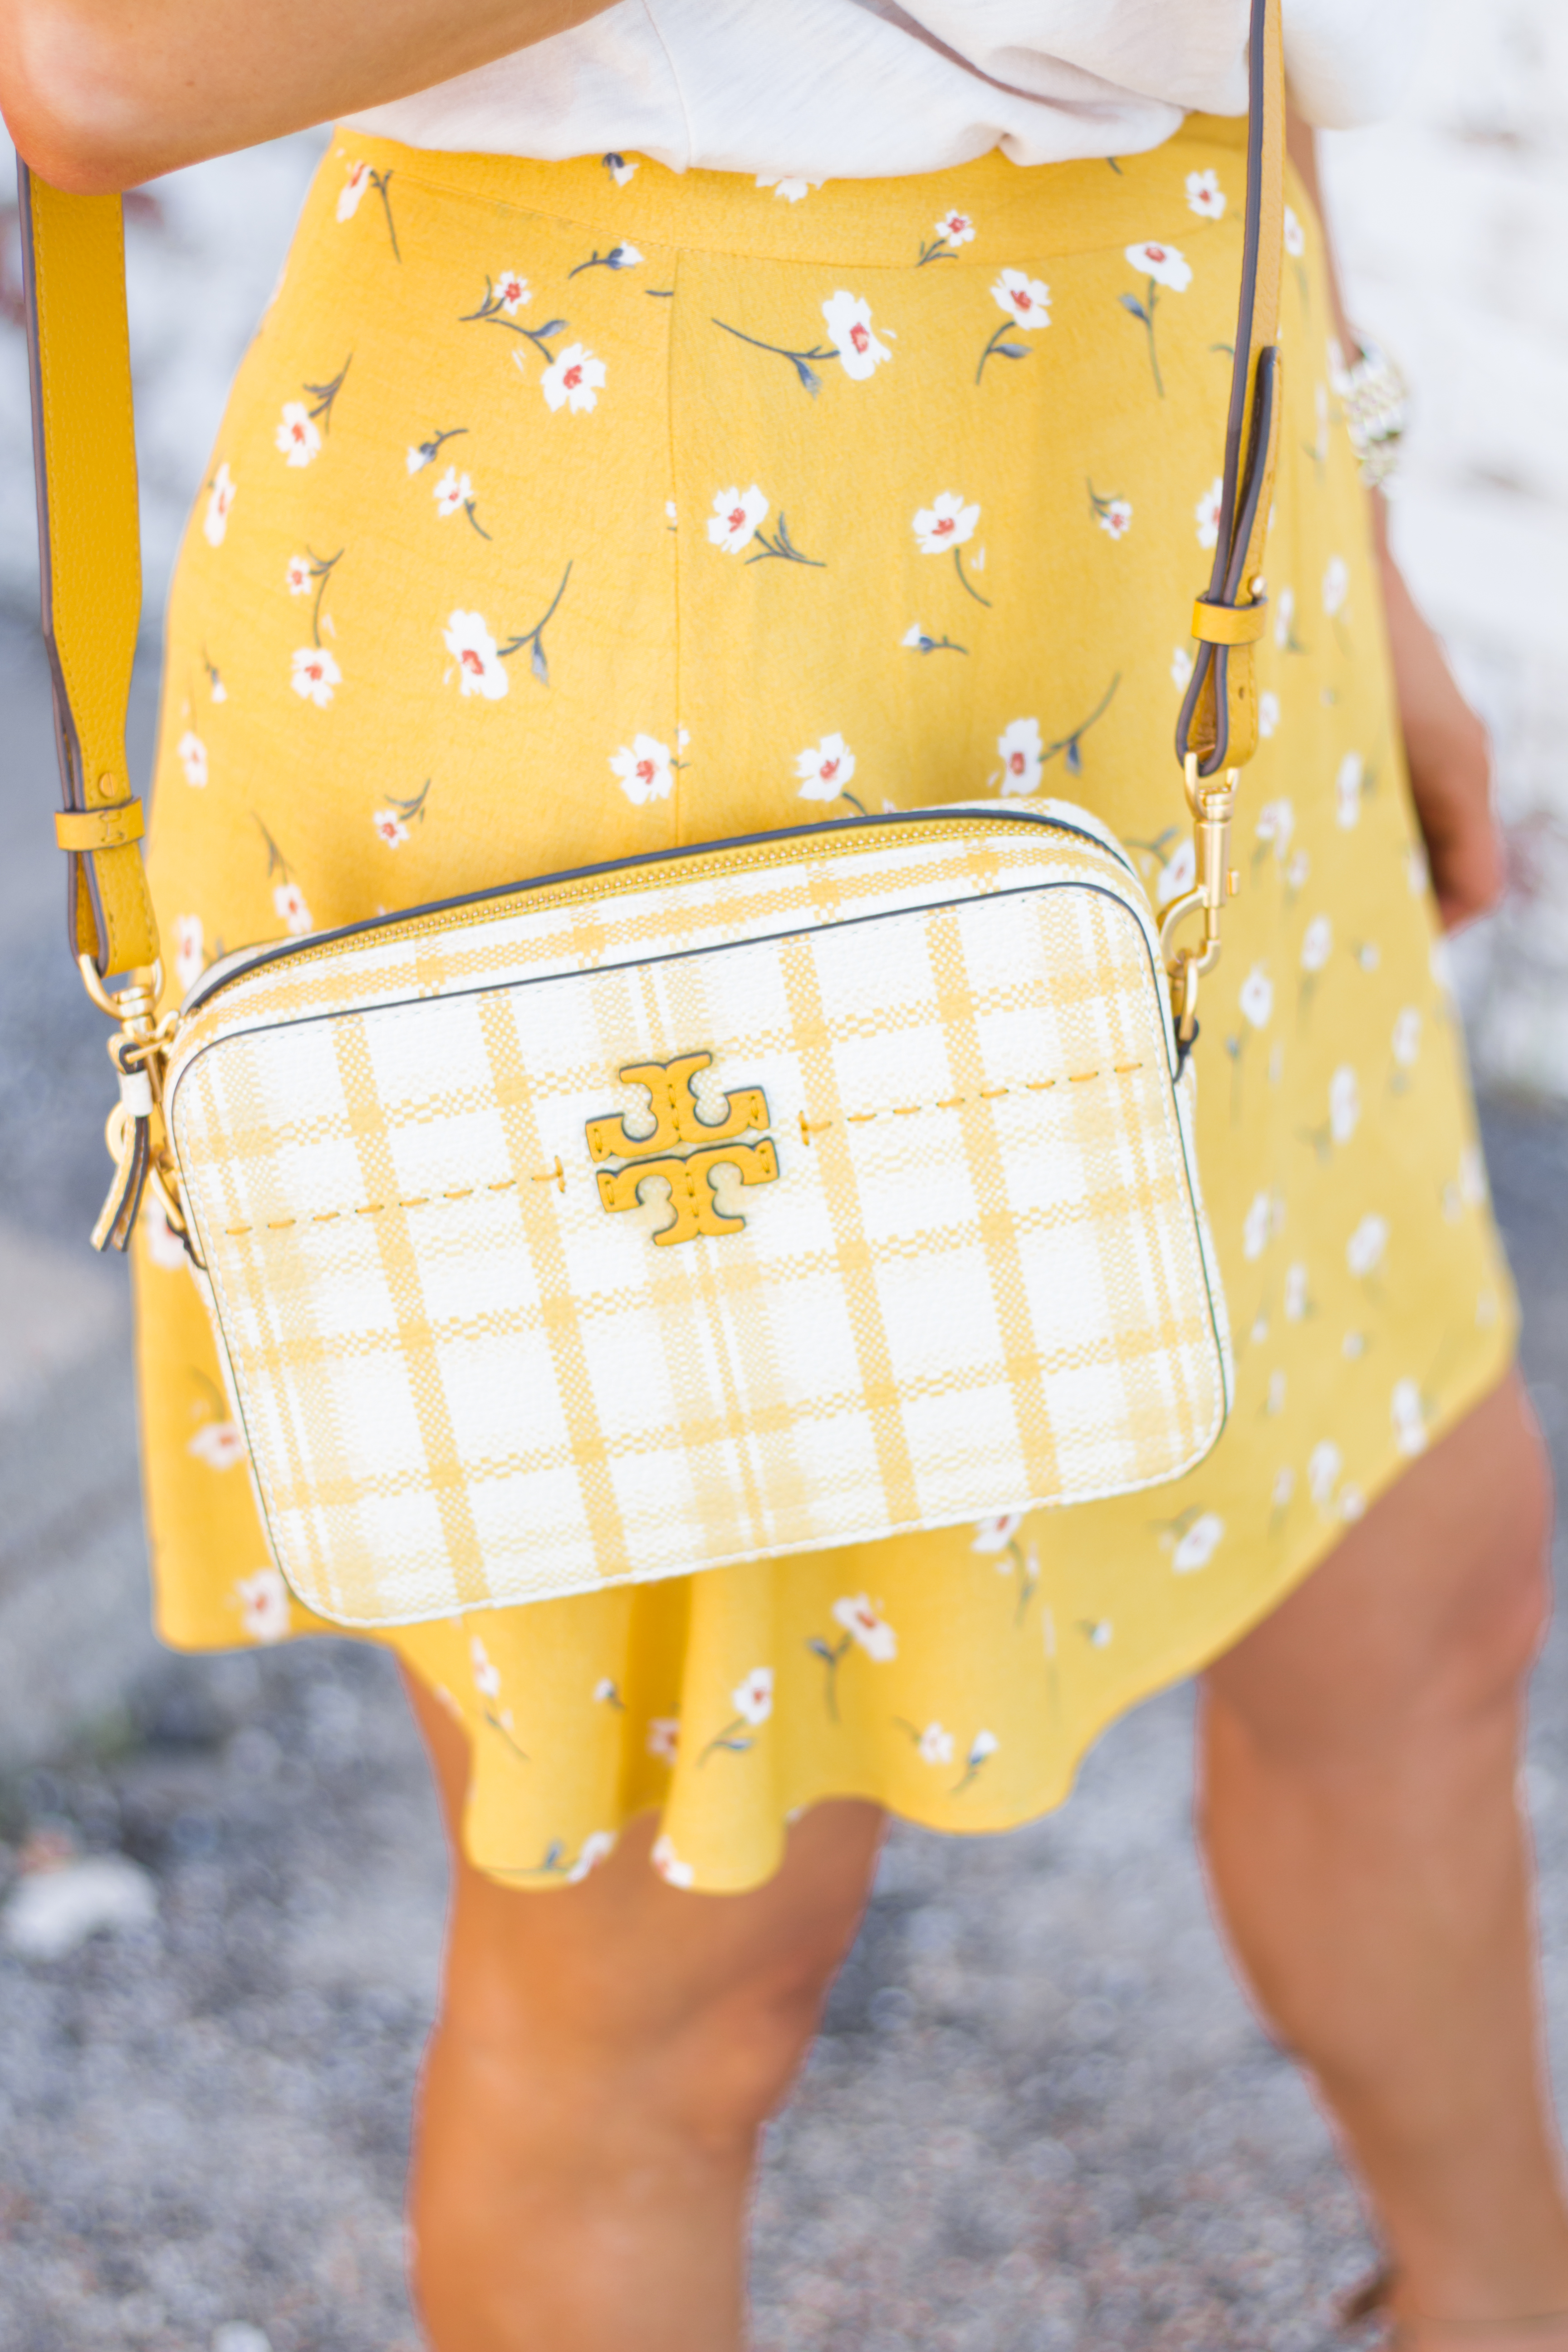 Sunday Funday-Graphic Tee-Floral Skirt-Mini Skirt-Spring Fashion-Spring Style-Tory Burch Purse-Quay Sunglasses-Tan Wedges-Espadrilles-Yellow-Colorful Style-Sabby Style-Women's Fashion-Omaha Blog-Omaha Blogger-4